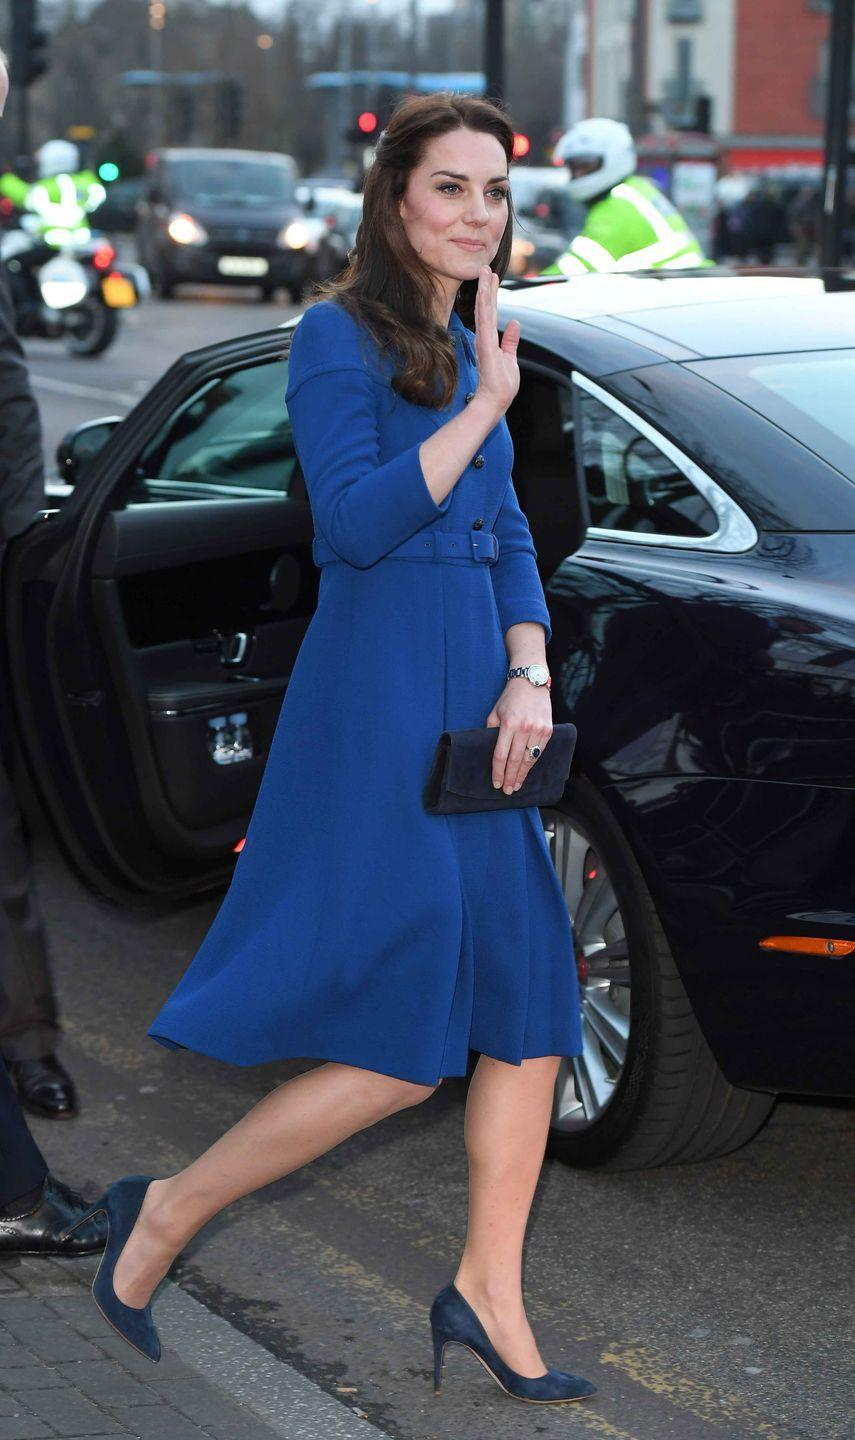 <p>For her first engagement of the year, The Duchess of Cambridge steps out in London wearing a royal blue coat dress by Eponine and navy suede clutch and heels.</p>